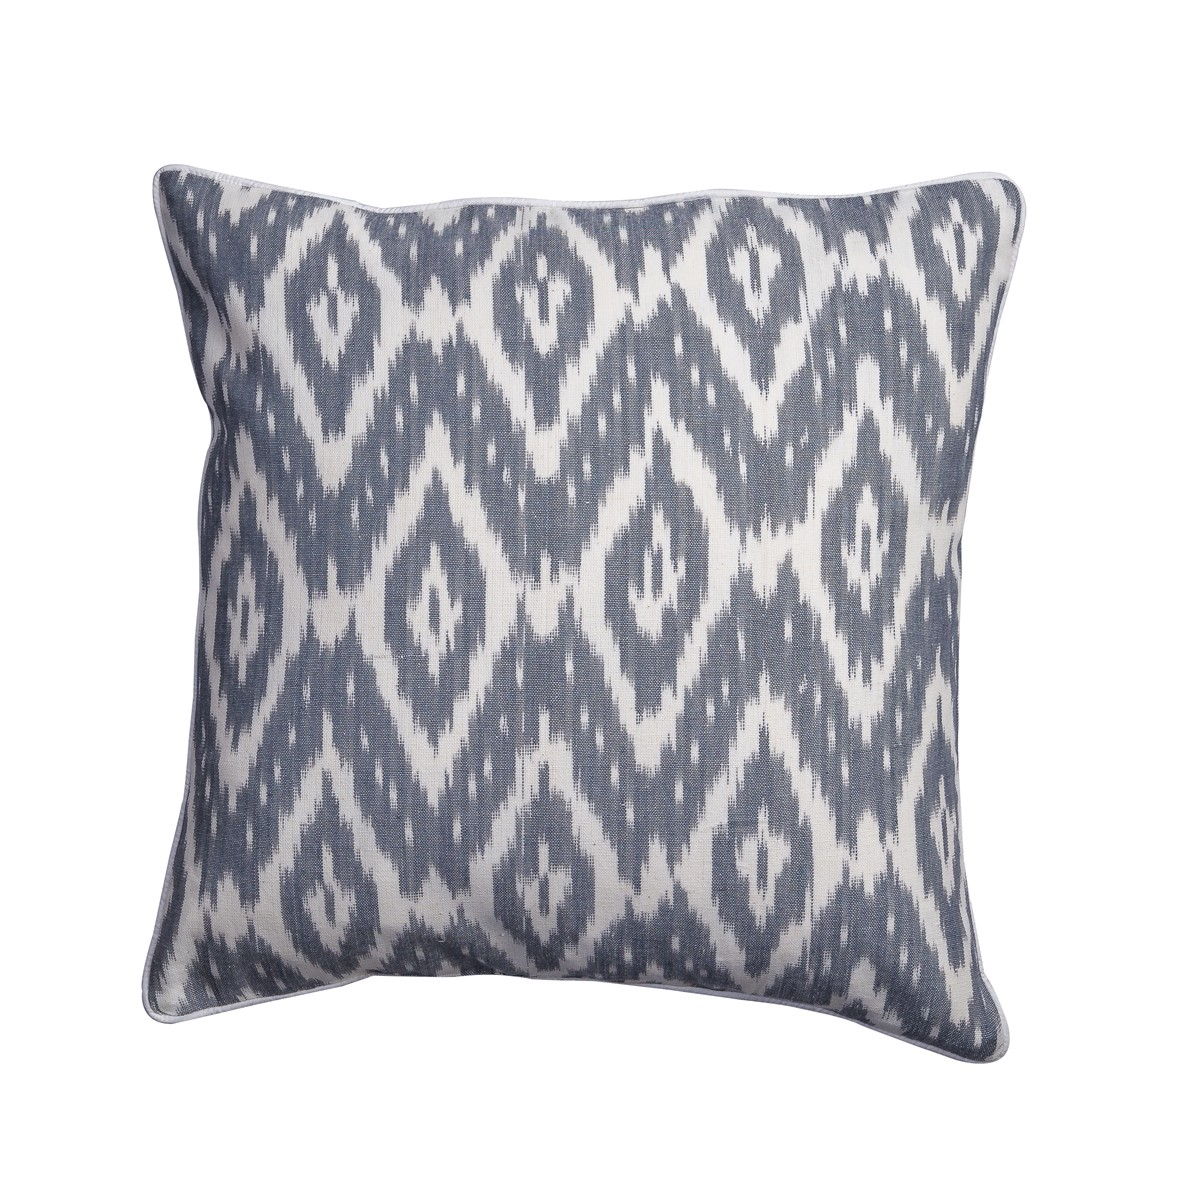 Mist - Grey patterned cushion with white piping - Single